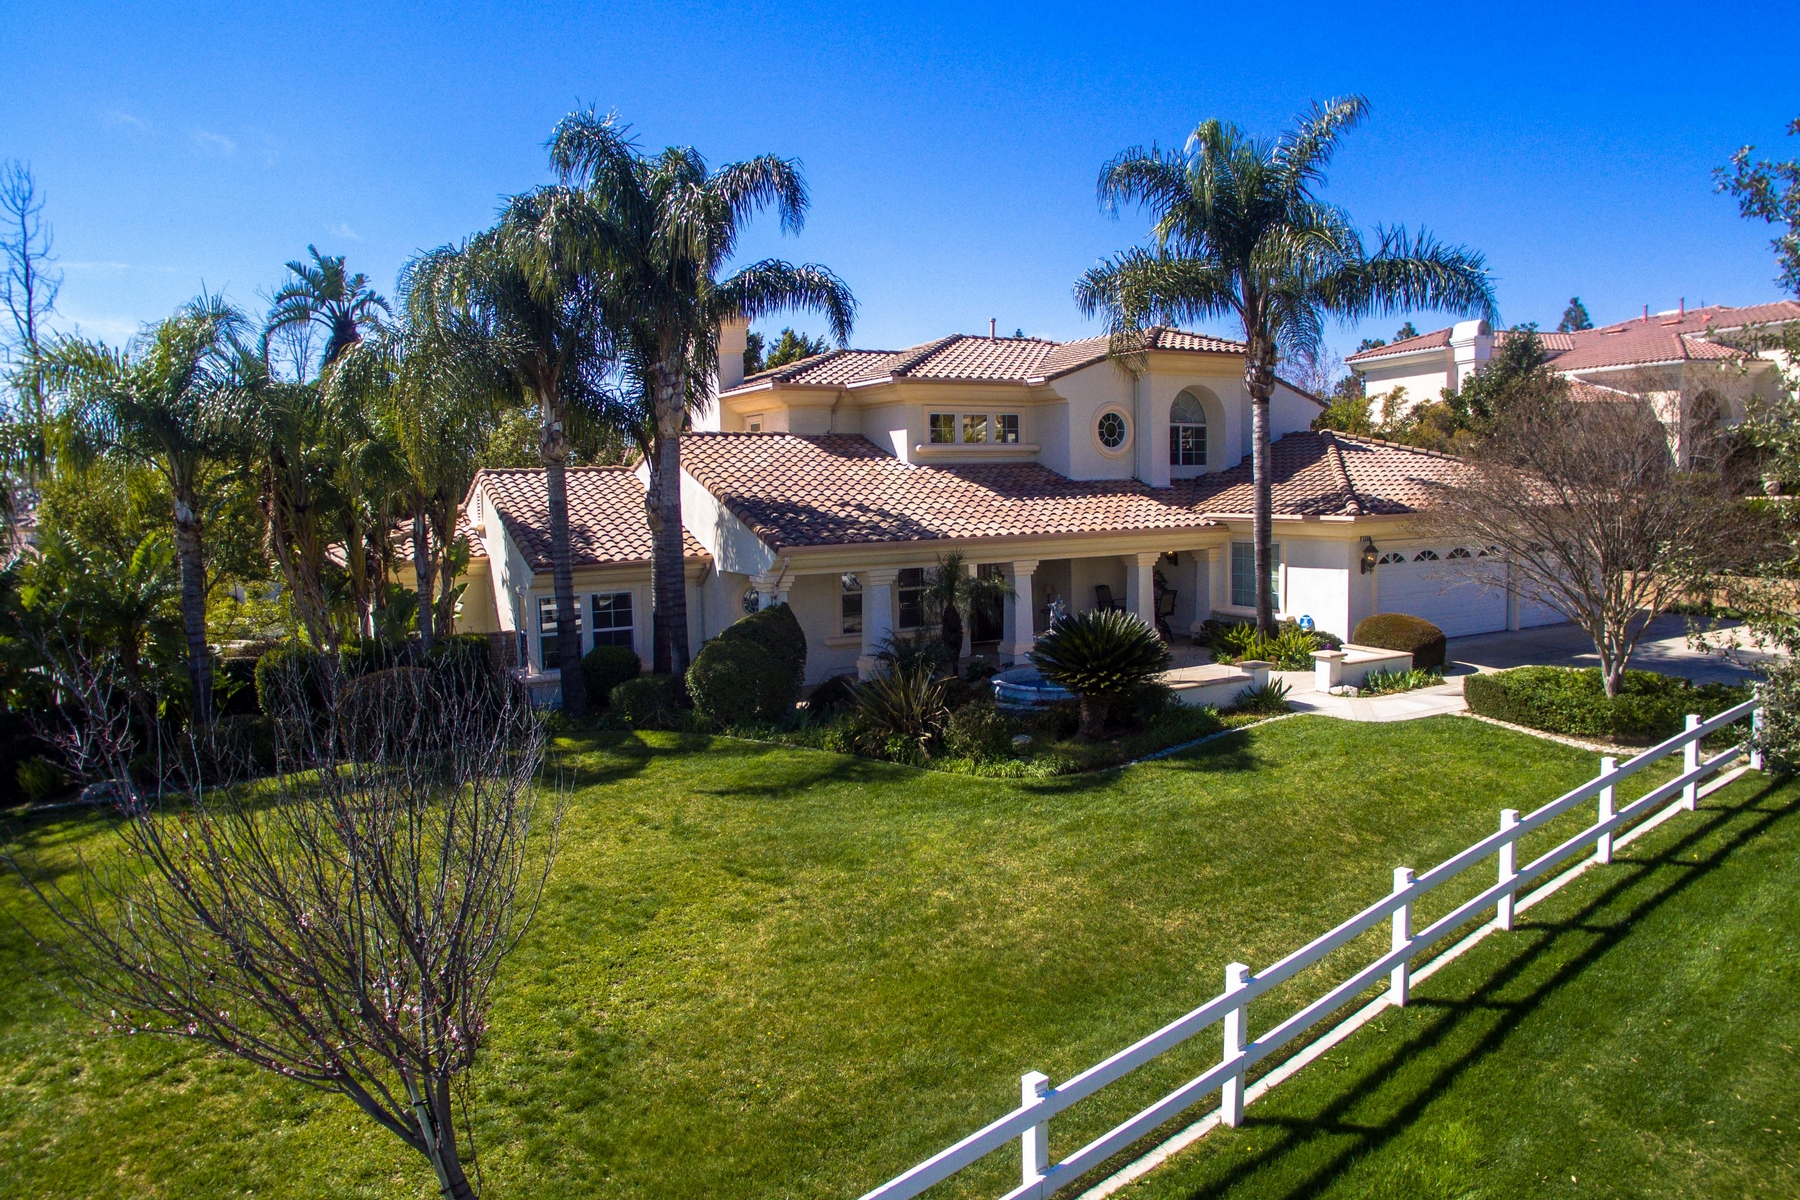 Single Family Home for Sale at 5598 High Meadow Place, Rancho Cucamonga Rancho Cucamonga, California 91737 United States